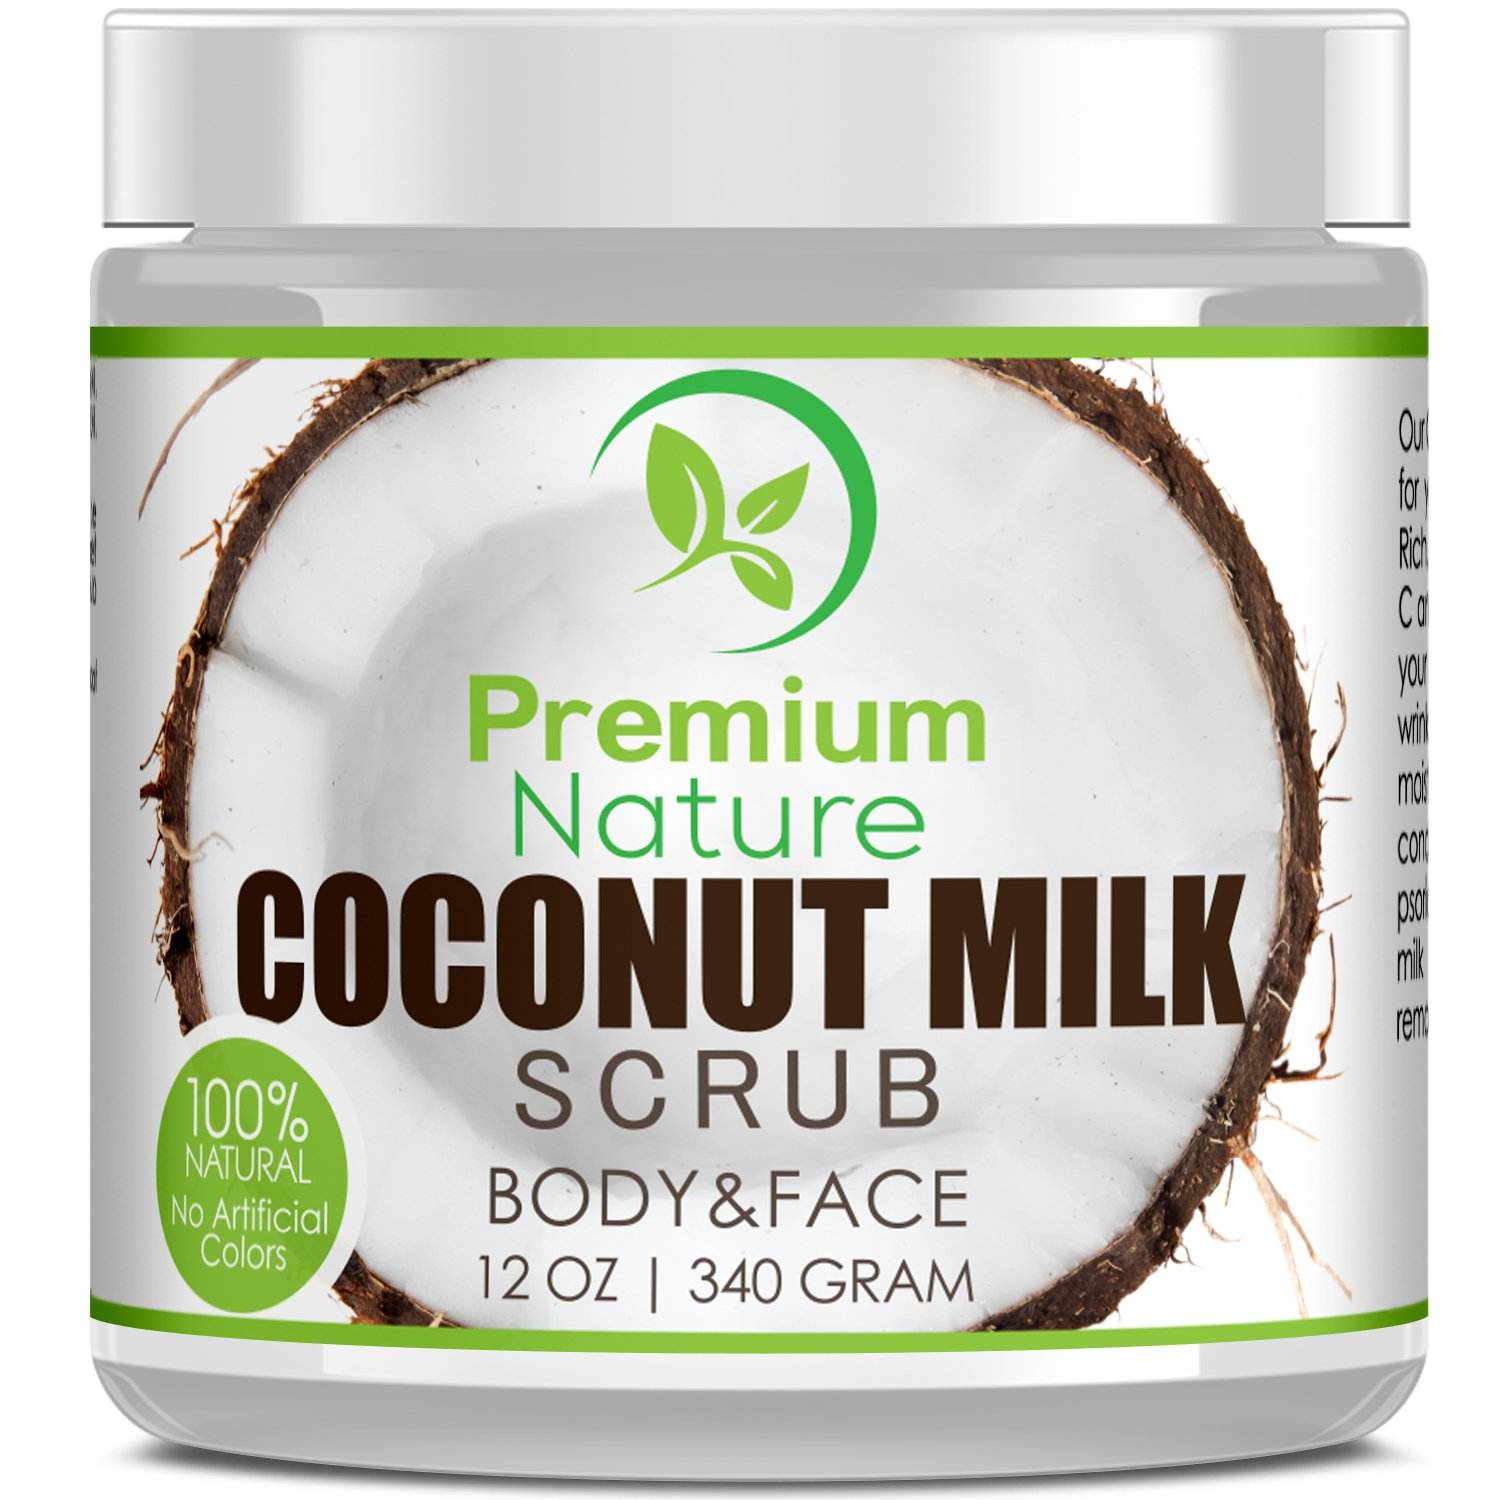 Coconut Milk Exfoliating Body Scrub - 12 oz for Face & Body 100% Natural Best Exfoliator - Deep Cleansing Strech Mark And Cellulite Removal - Moisturizes Nourishes Soothes Radiant Skin Premium Nature